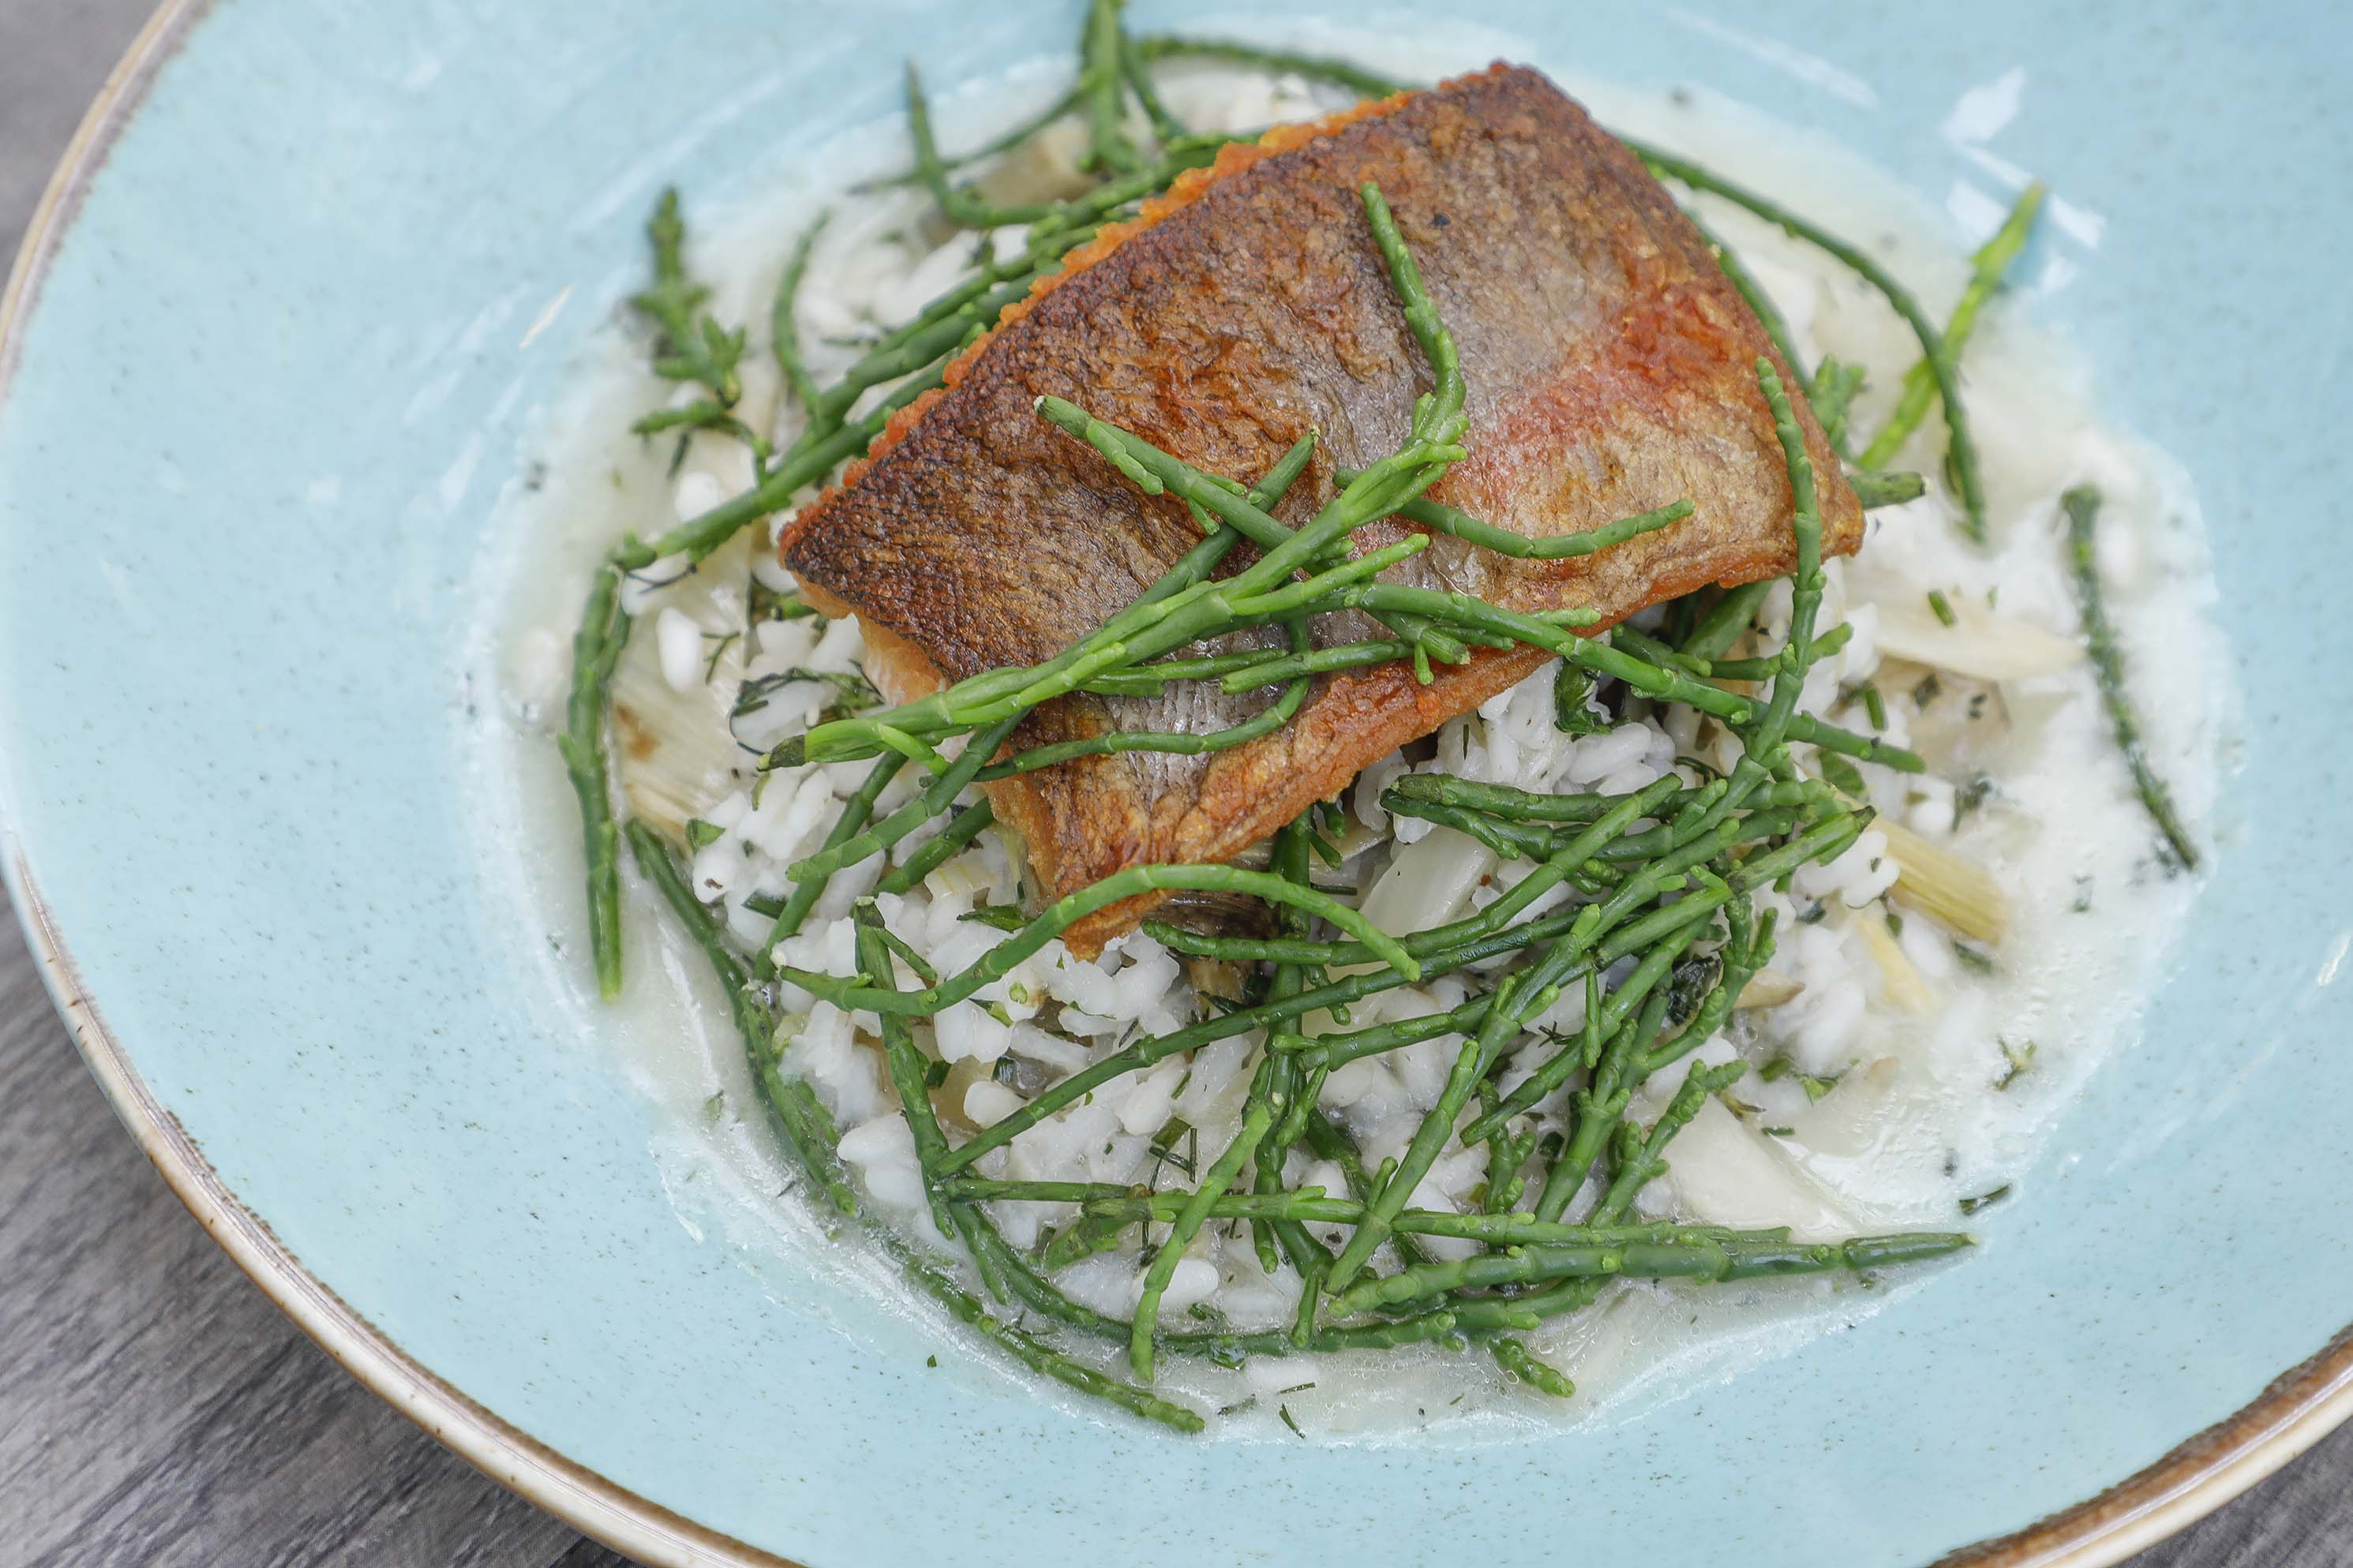 Rutland Water trout fillet with roasted fennel, artichoke risotto and rock samphire £17.95.